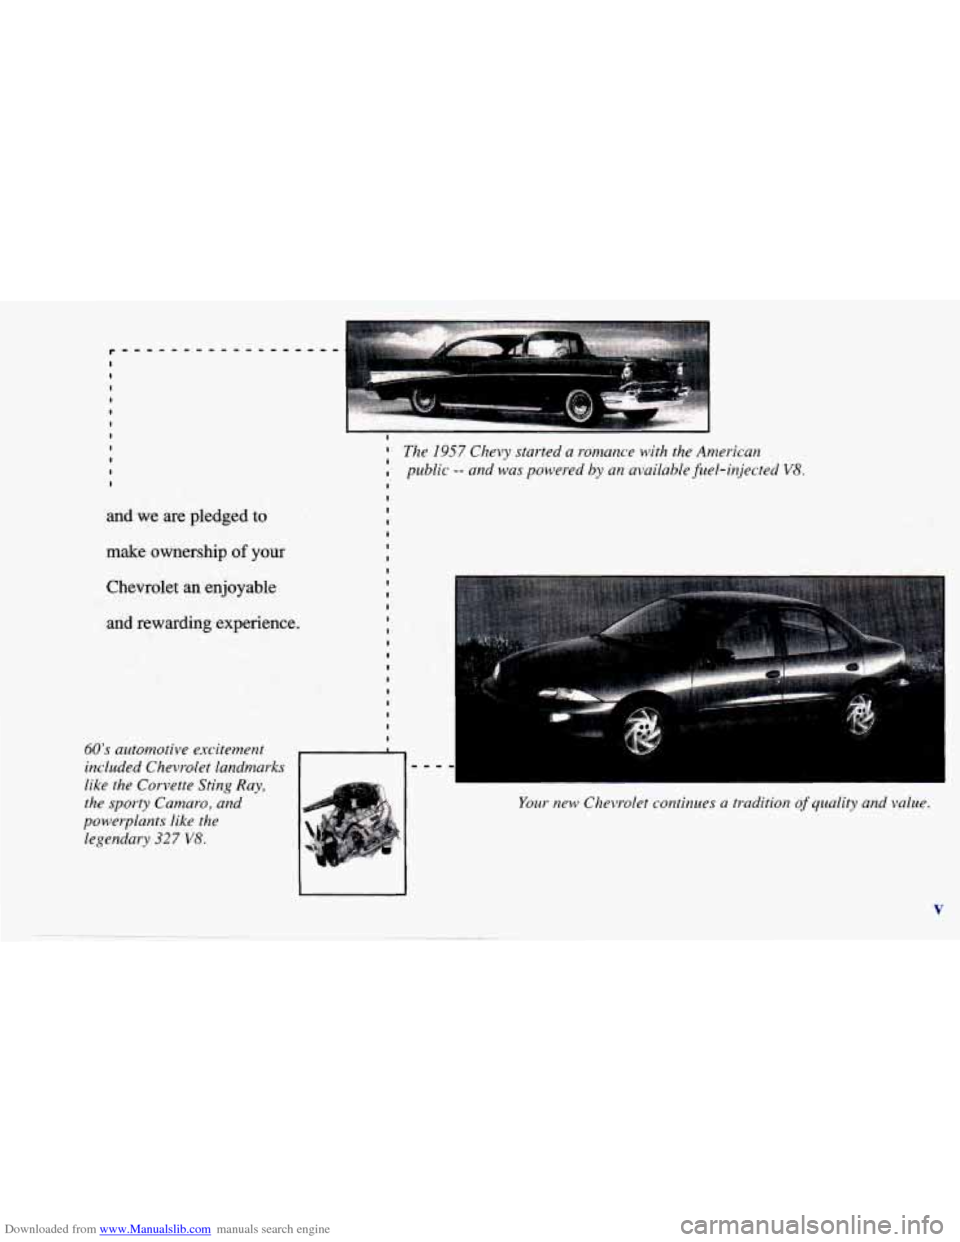 2001 chevy chevrolet cavalier owners manual